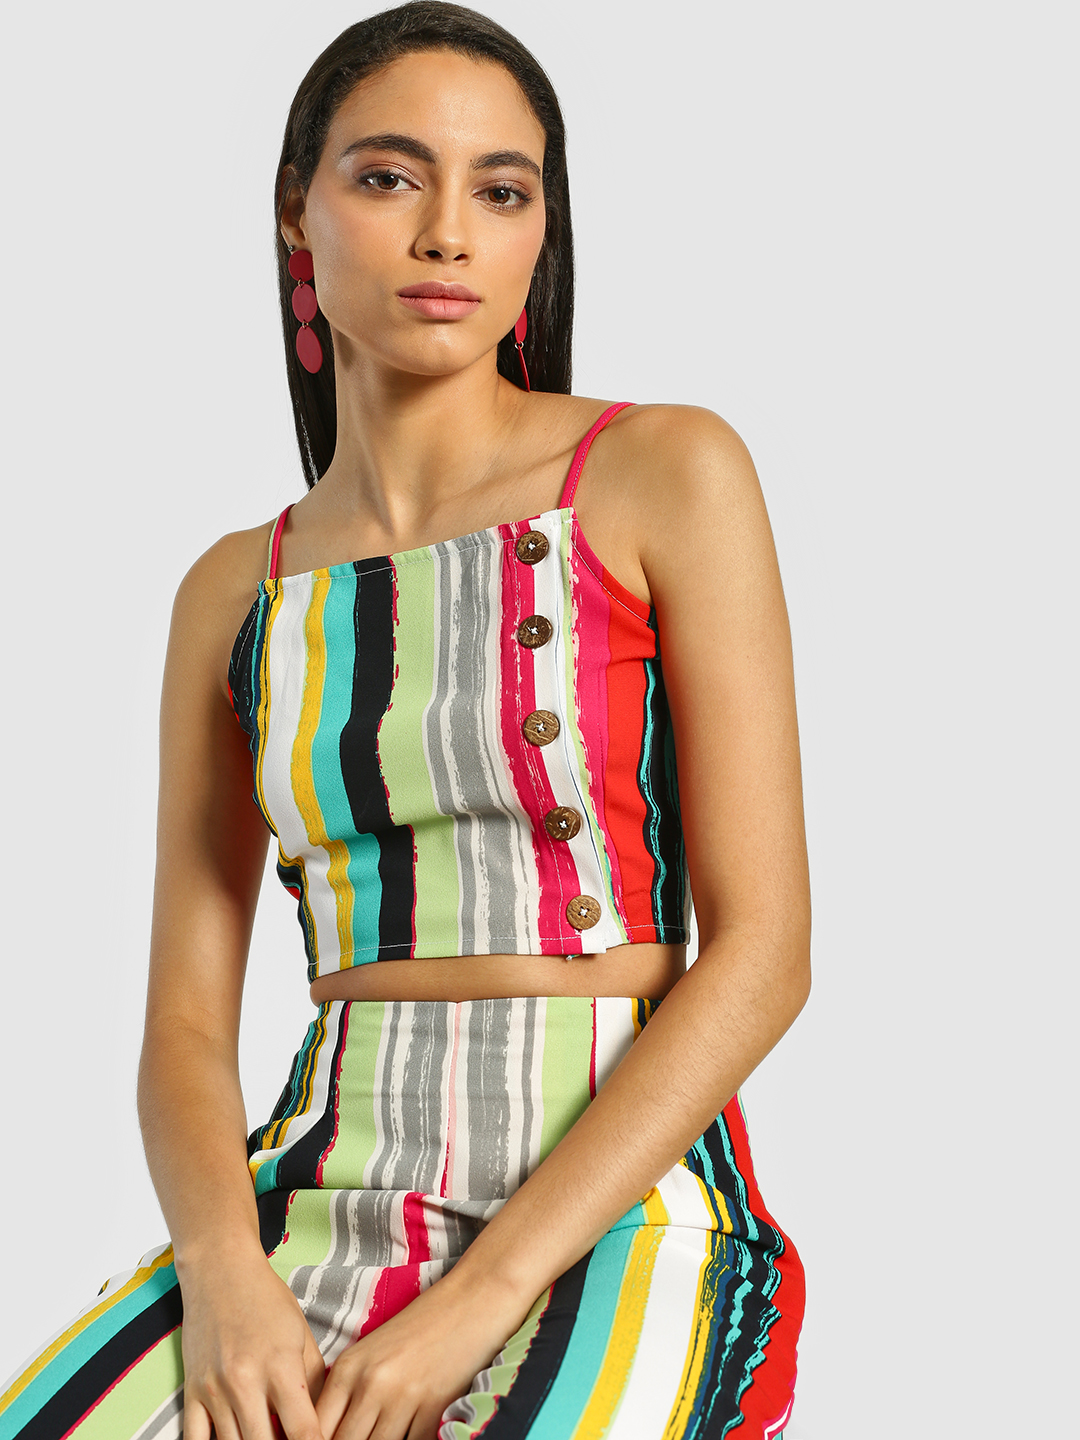 Ri-Dress Multi Stripe Print Buttoned Crop Top 1